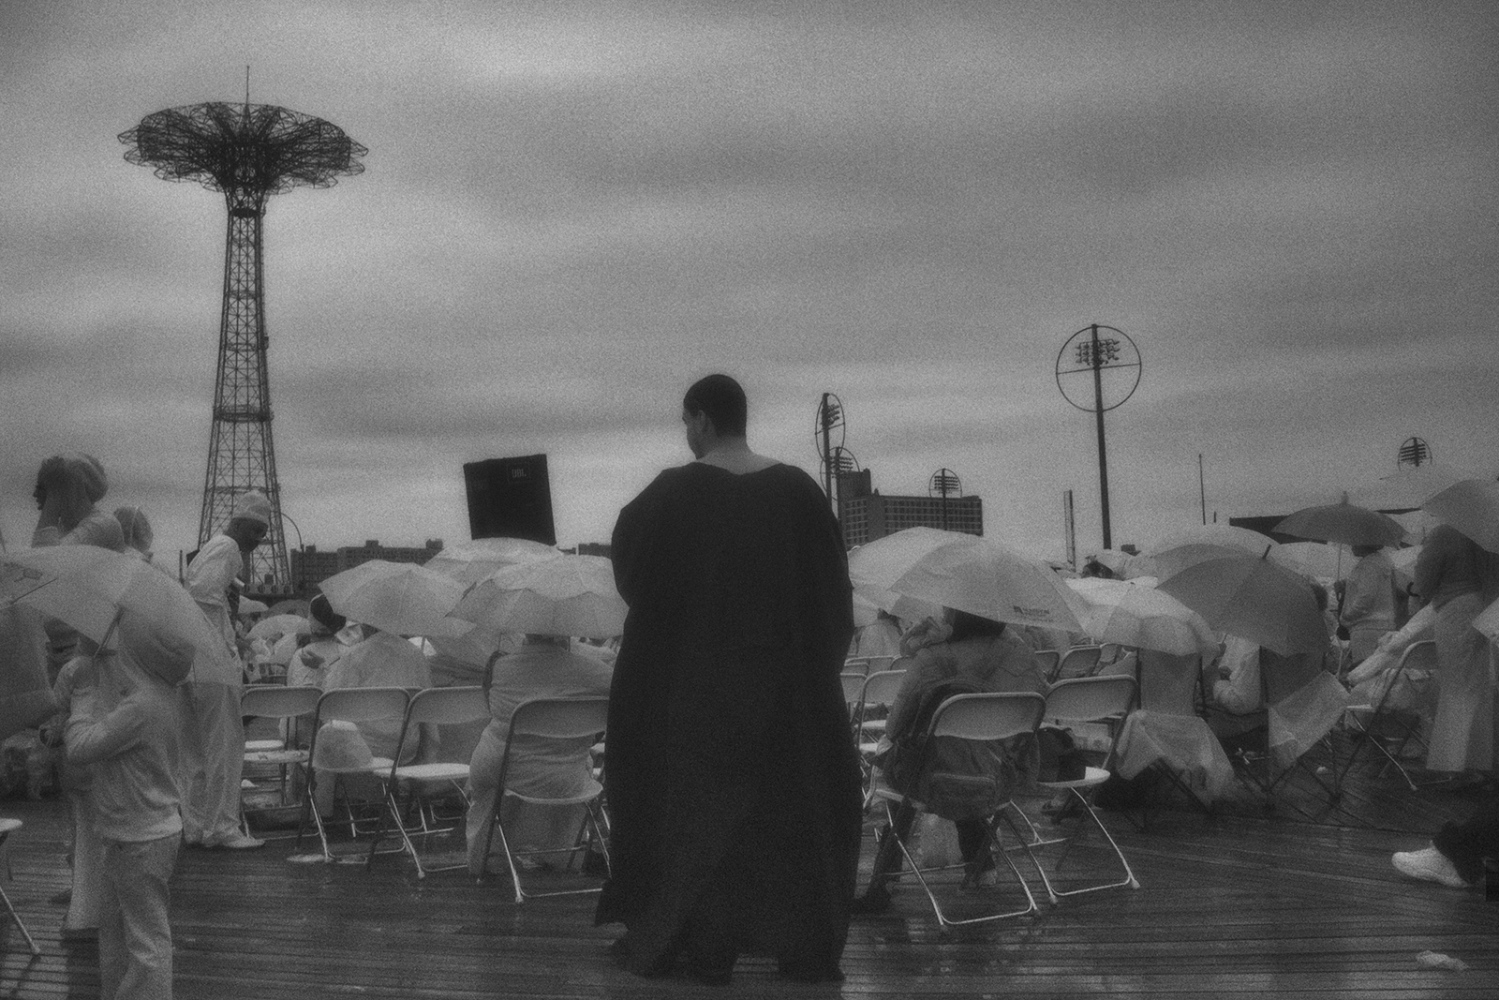 This image is one of the few I took on the boardwalk. It was a grey, rainy day and I was using my dedicated black and white camera. I liked the way the black-robed priest stood out against the white-clad crowd, with Coney Island's iconic Parachute Drop in the background and rain clouds filling the sky.